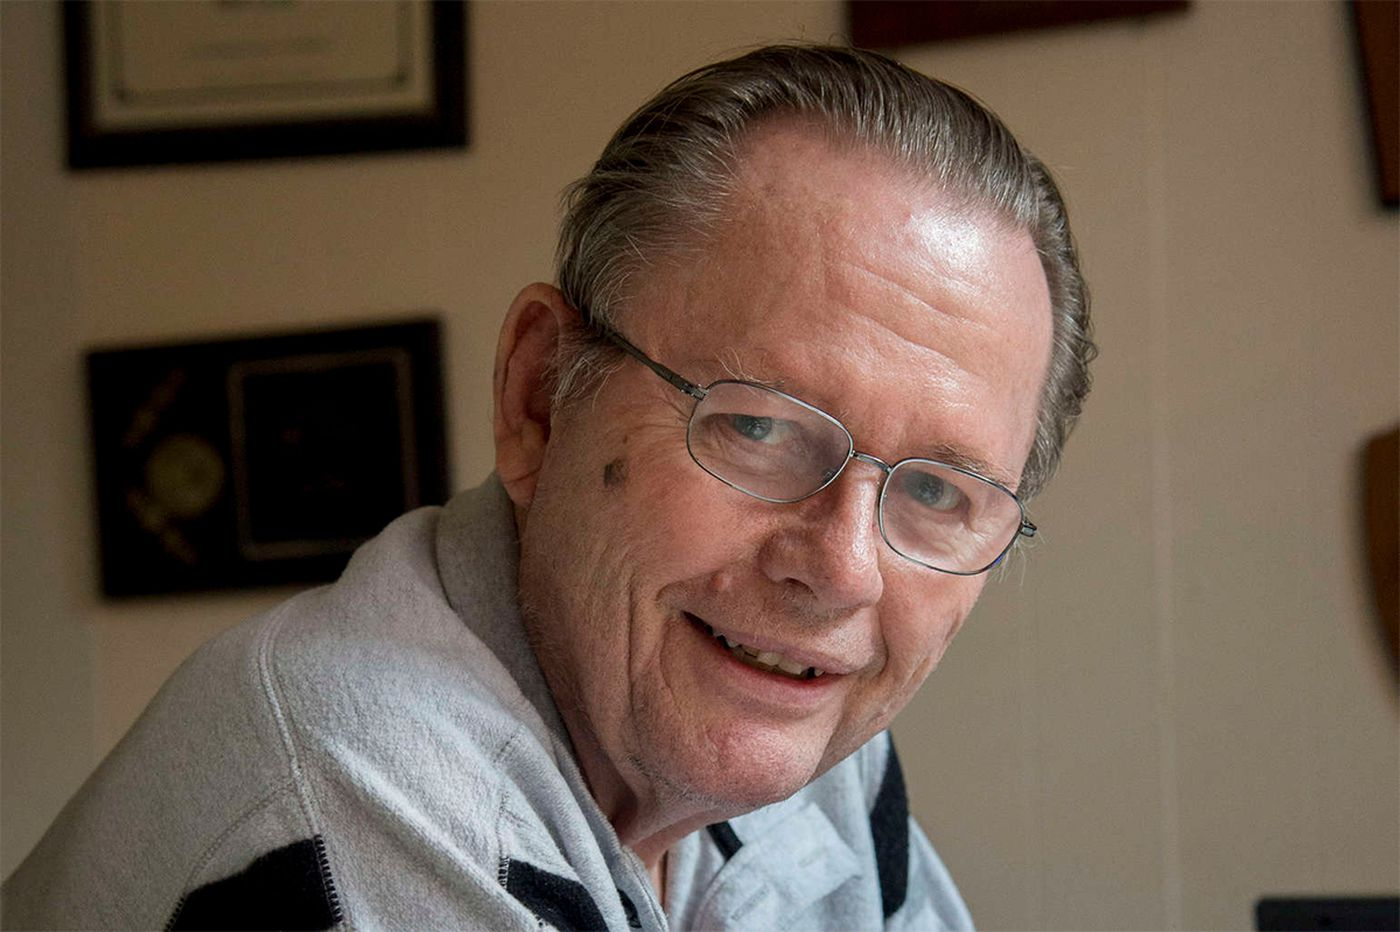 Viewing for Bill Lyon to take place in Newtown Square on Friday